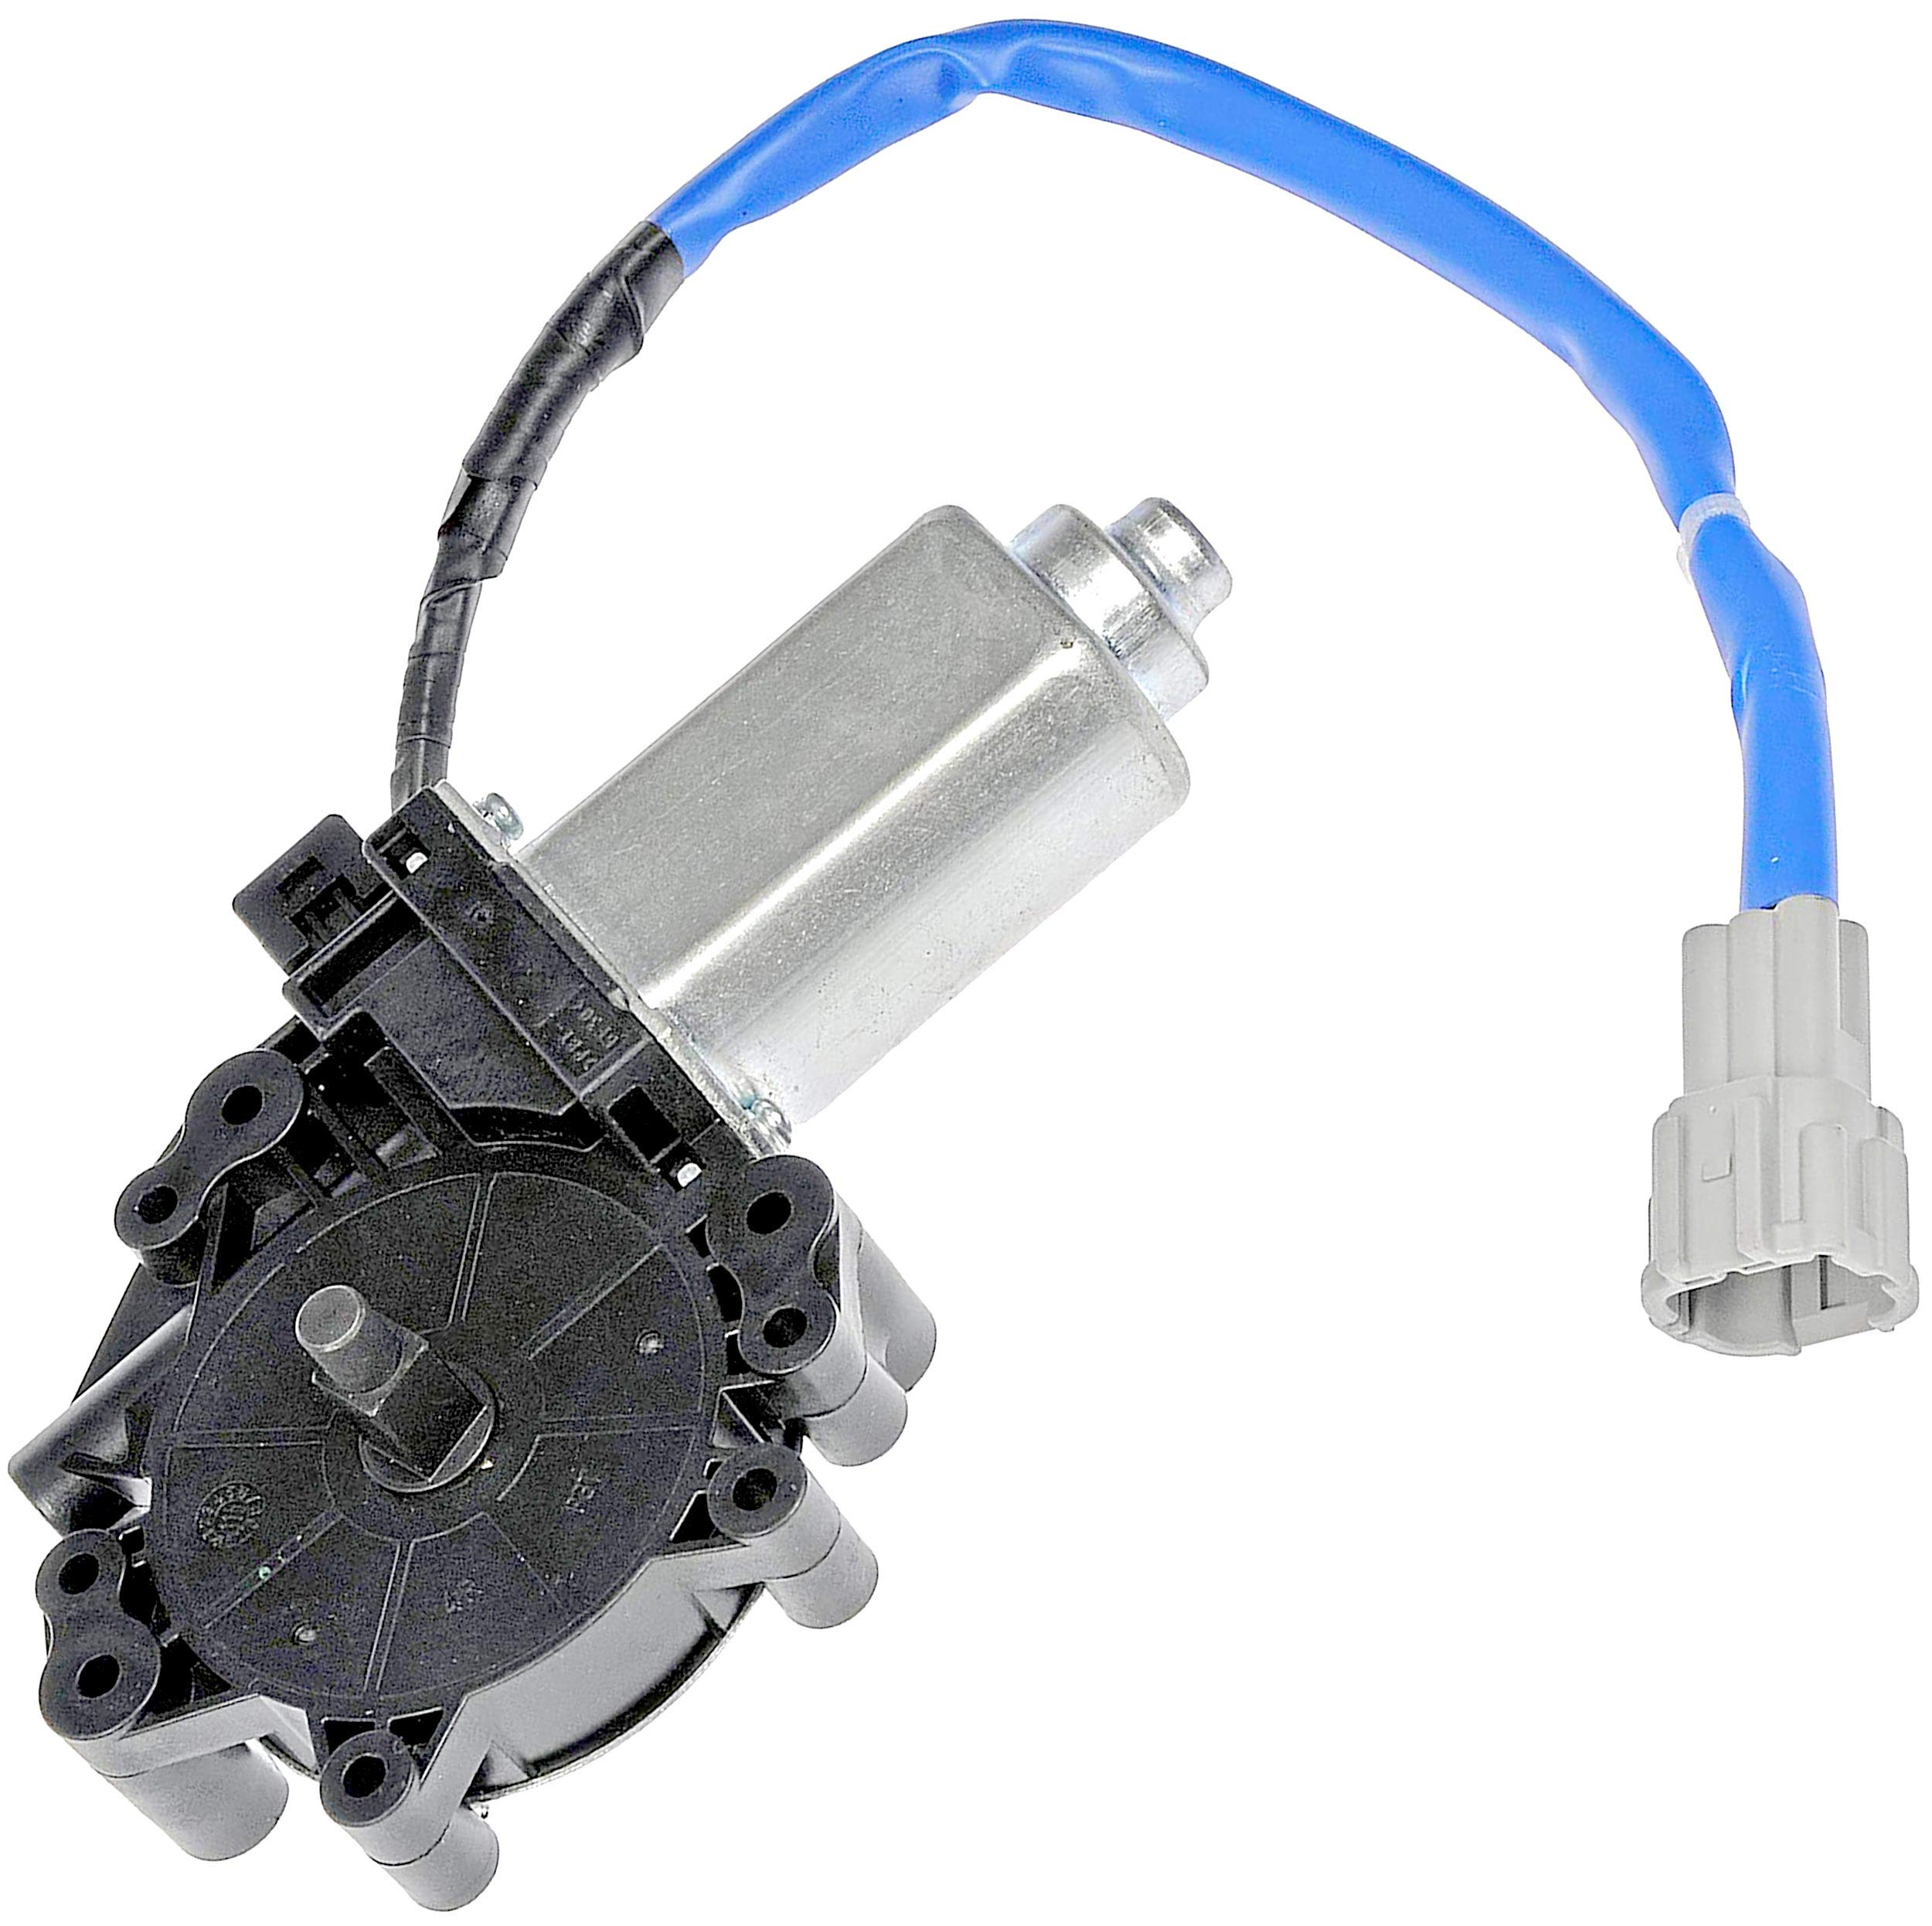 APDTY 853667 Power Window Lift Motor Fits Front Right 2004-2009 Nissan Quest (Replaces Nissan 80730-ZM70B, 80730ZM70B)